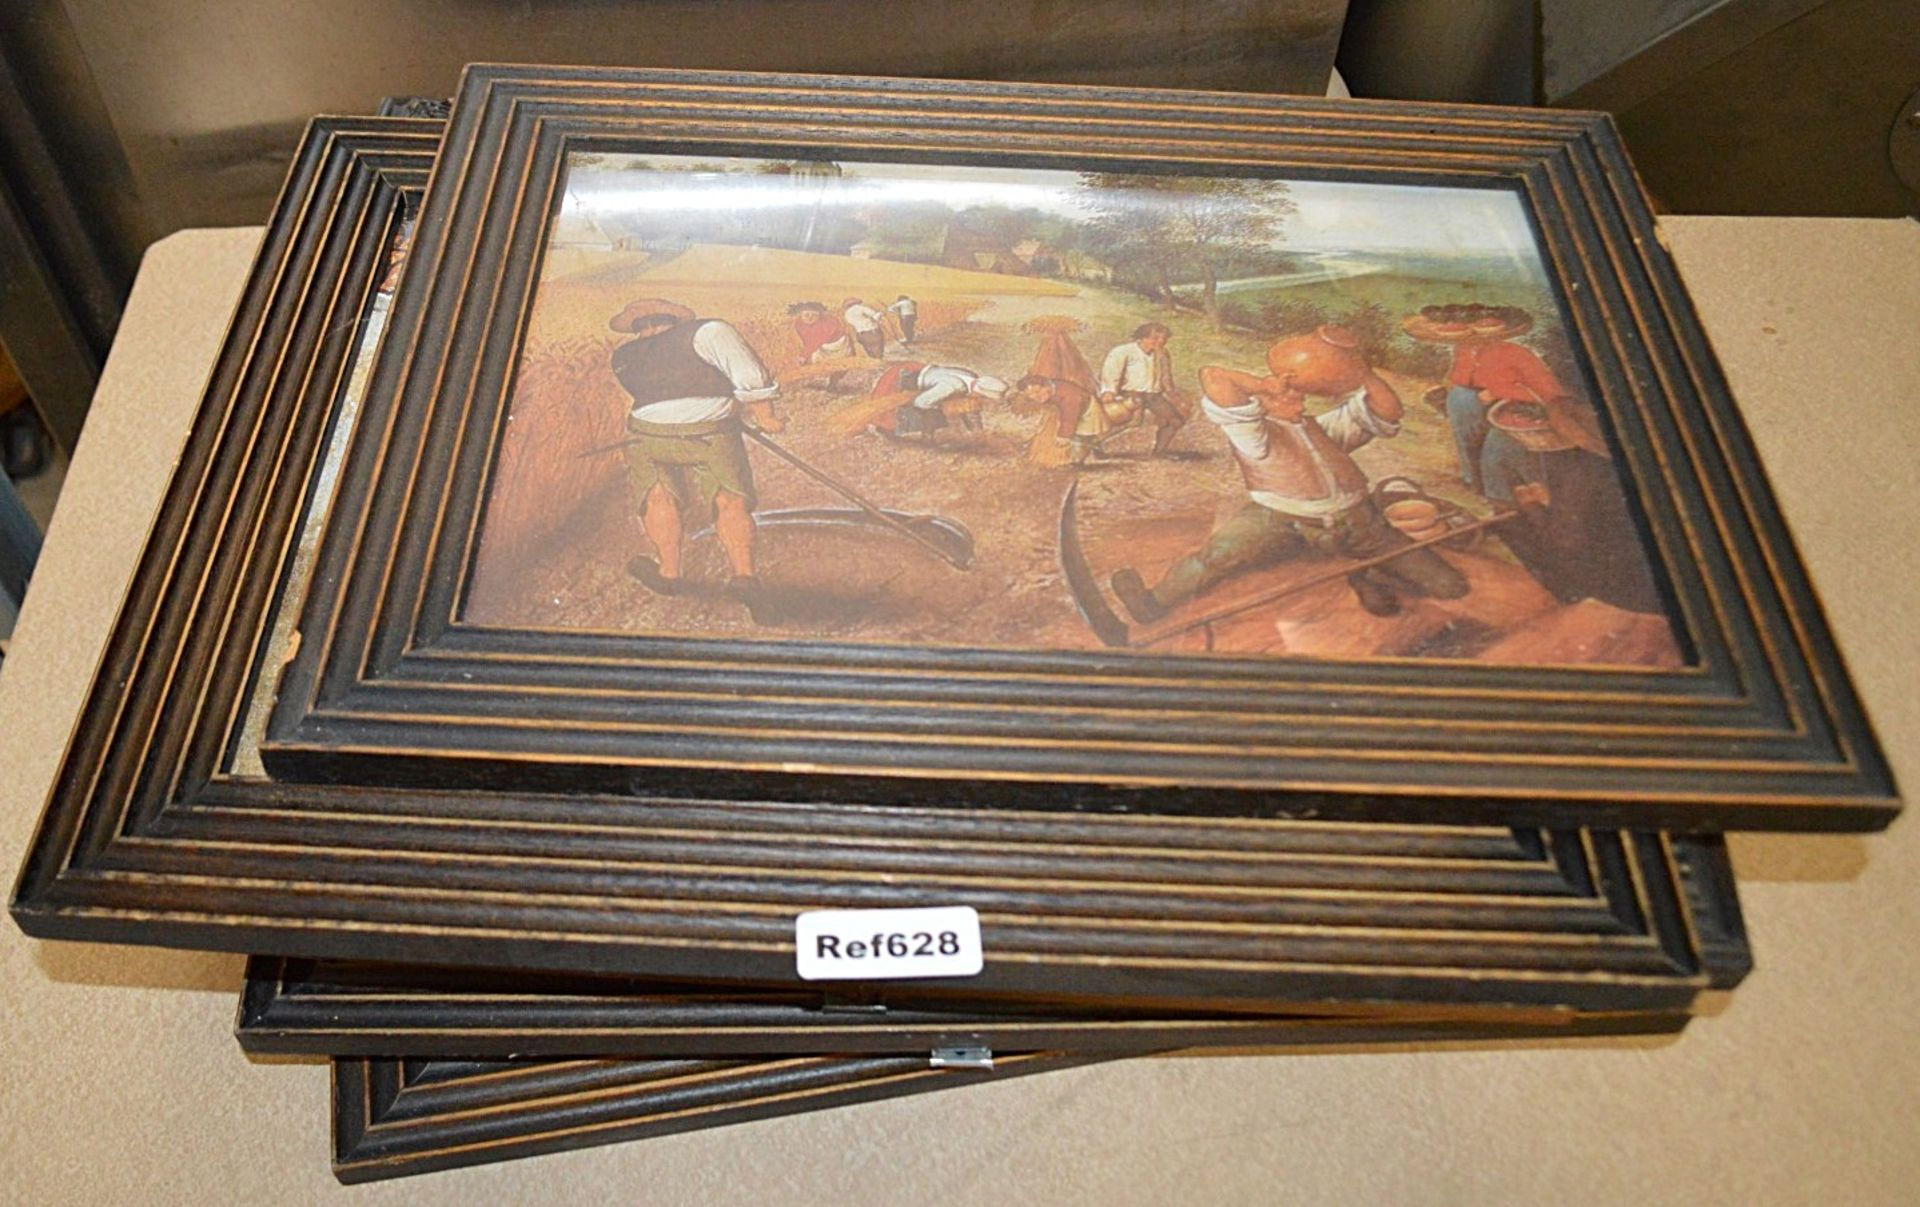 Lot 7524 - 7 x Assorted Framed Art Prints Based Around Bakery - Various Sizes - Ref628 - CL481 - WH2 RT -